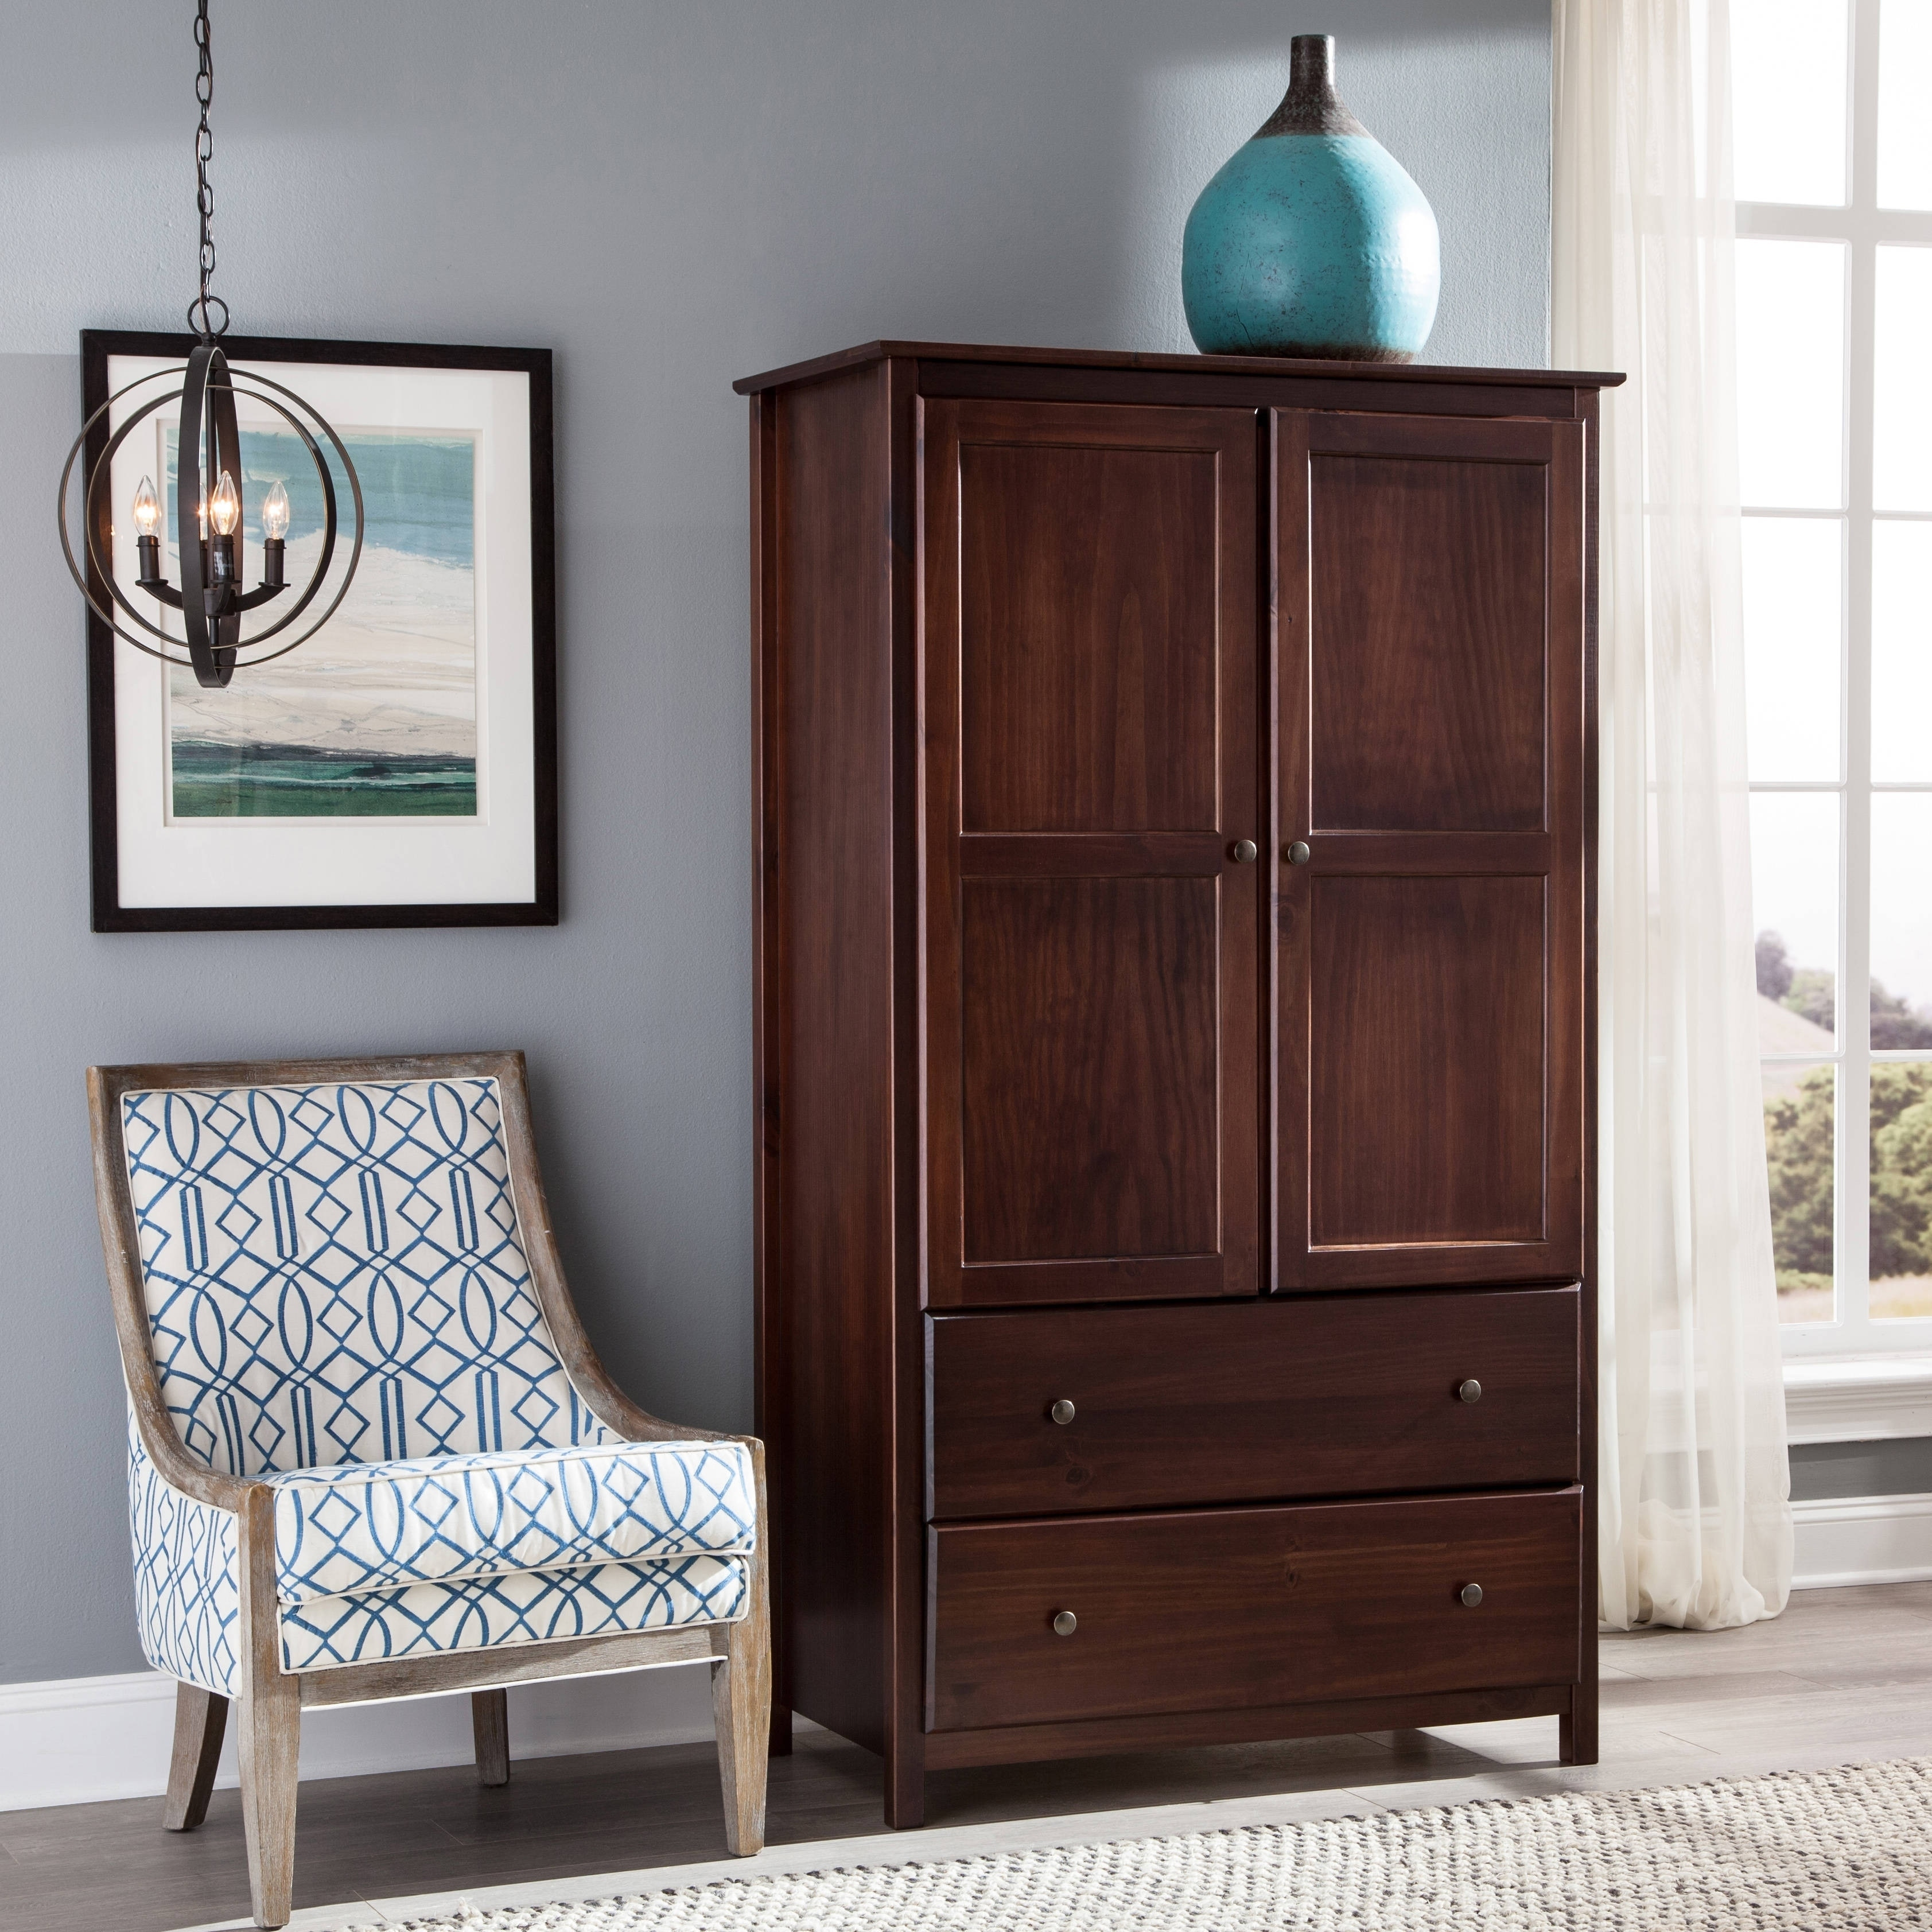 Grain Wood Furniture Shaker 2-door Solid Wood Armoire Cherry Finish - Free Shipping Today - Overstock.com - 17180213 & Grain Wood Furniture Shaker 2-door Solid Wood Armoire Cherry Finish ...